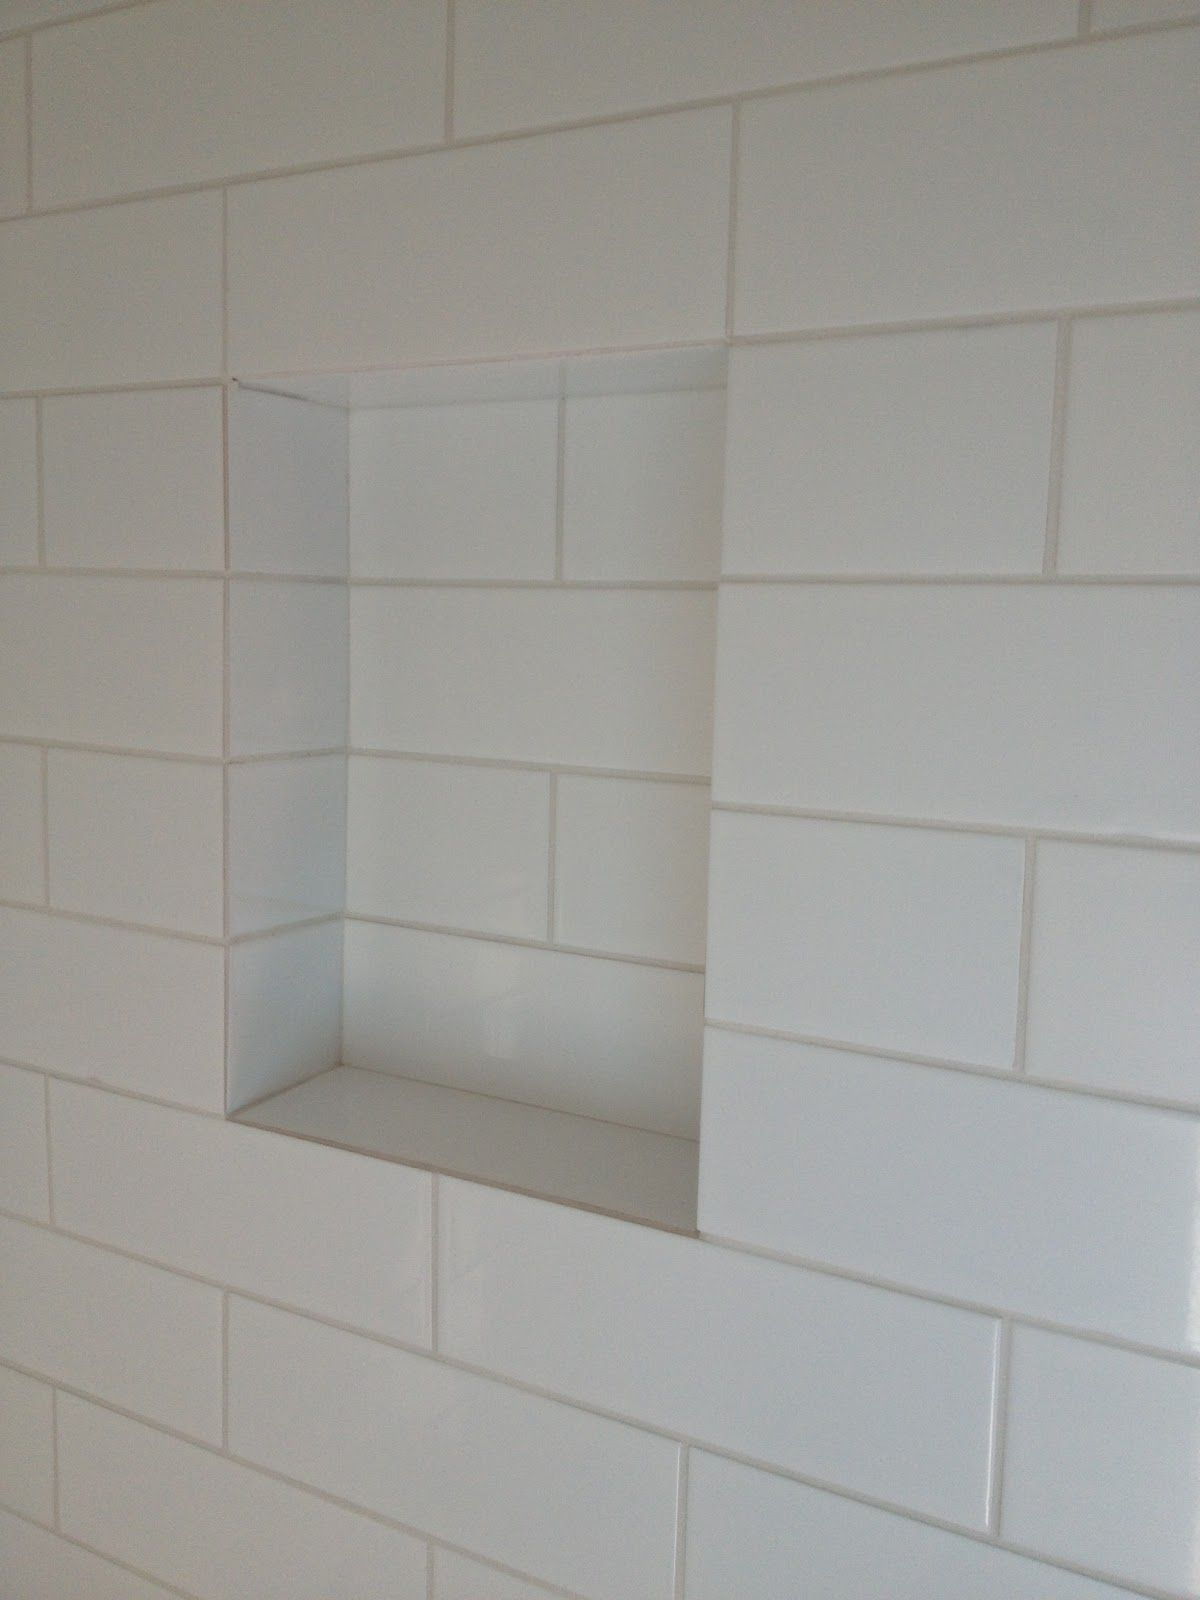 Shower Shelves Built In Shampoo Shelf With Gently Sloped